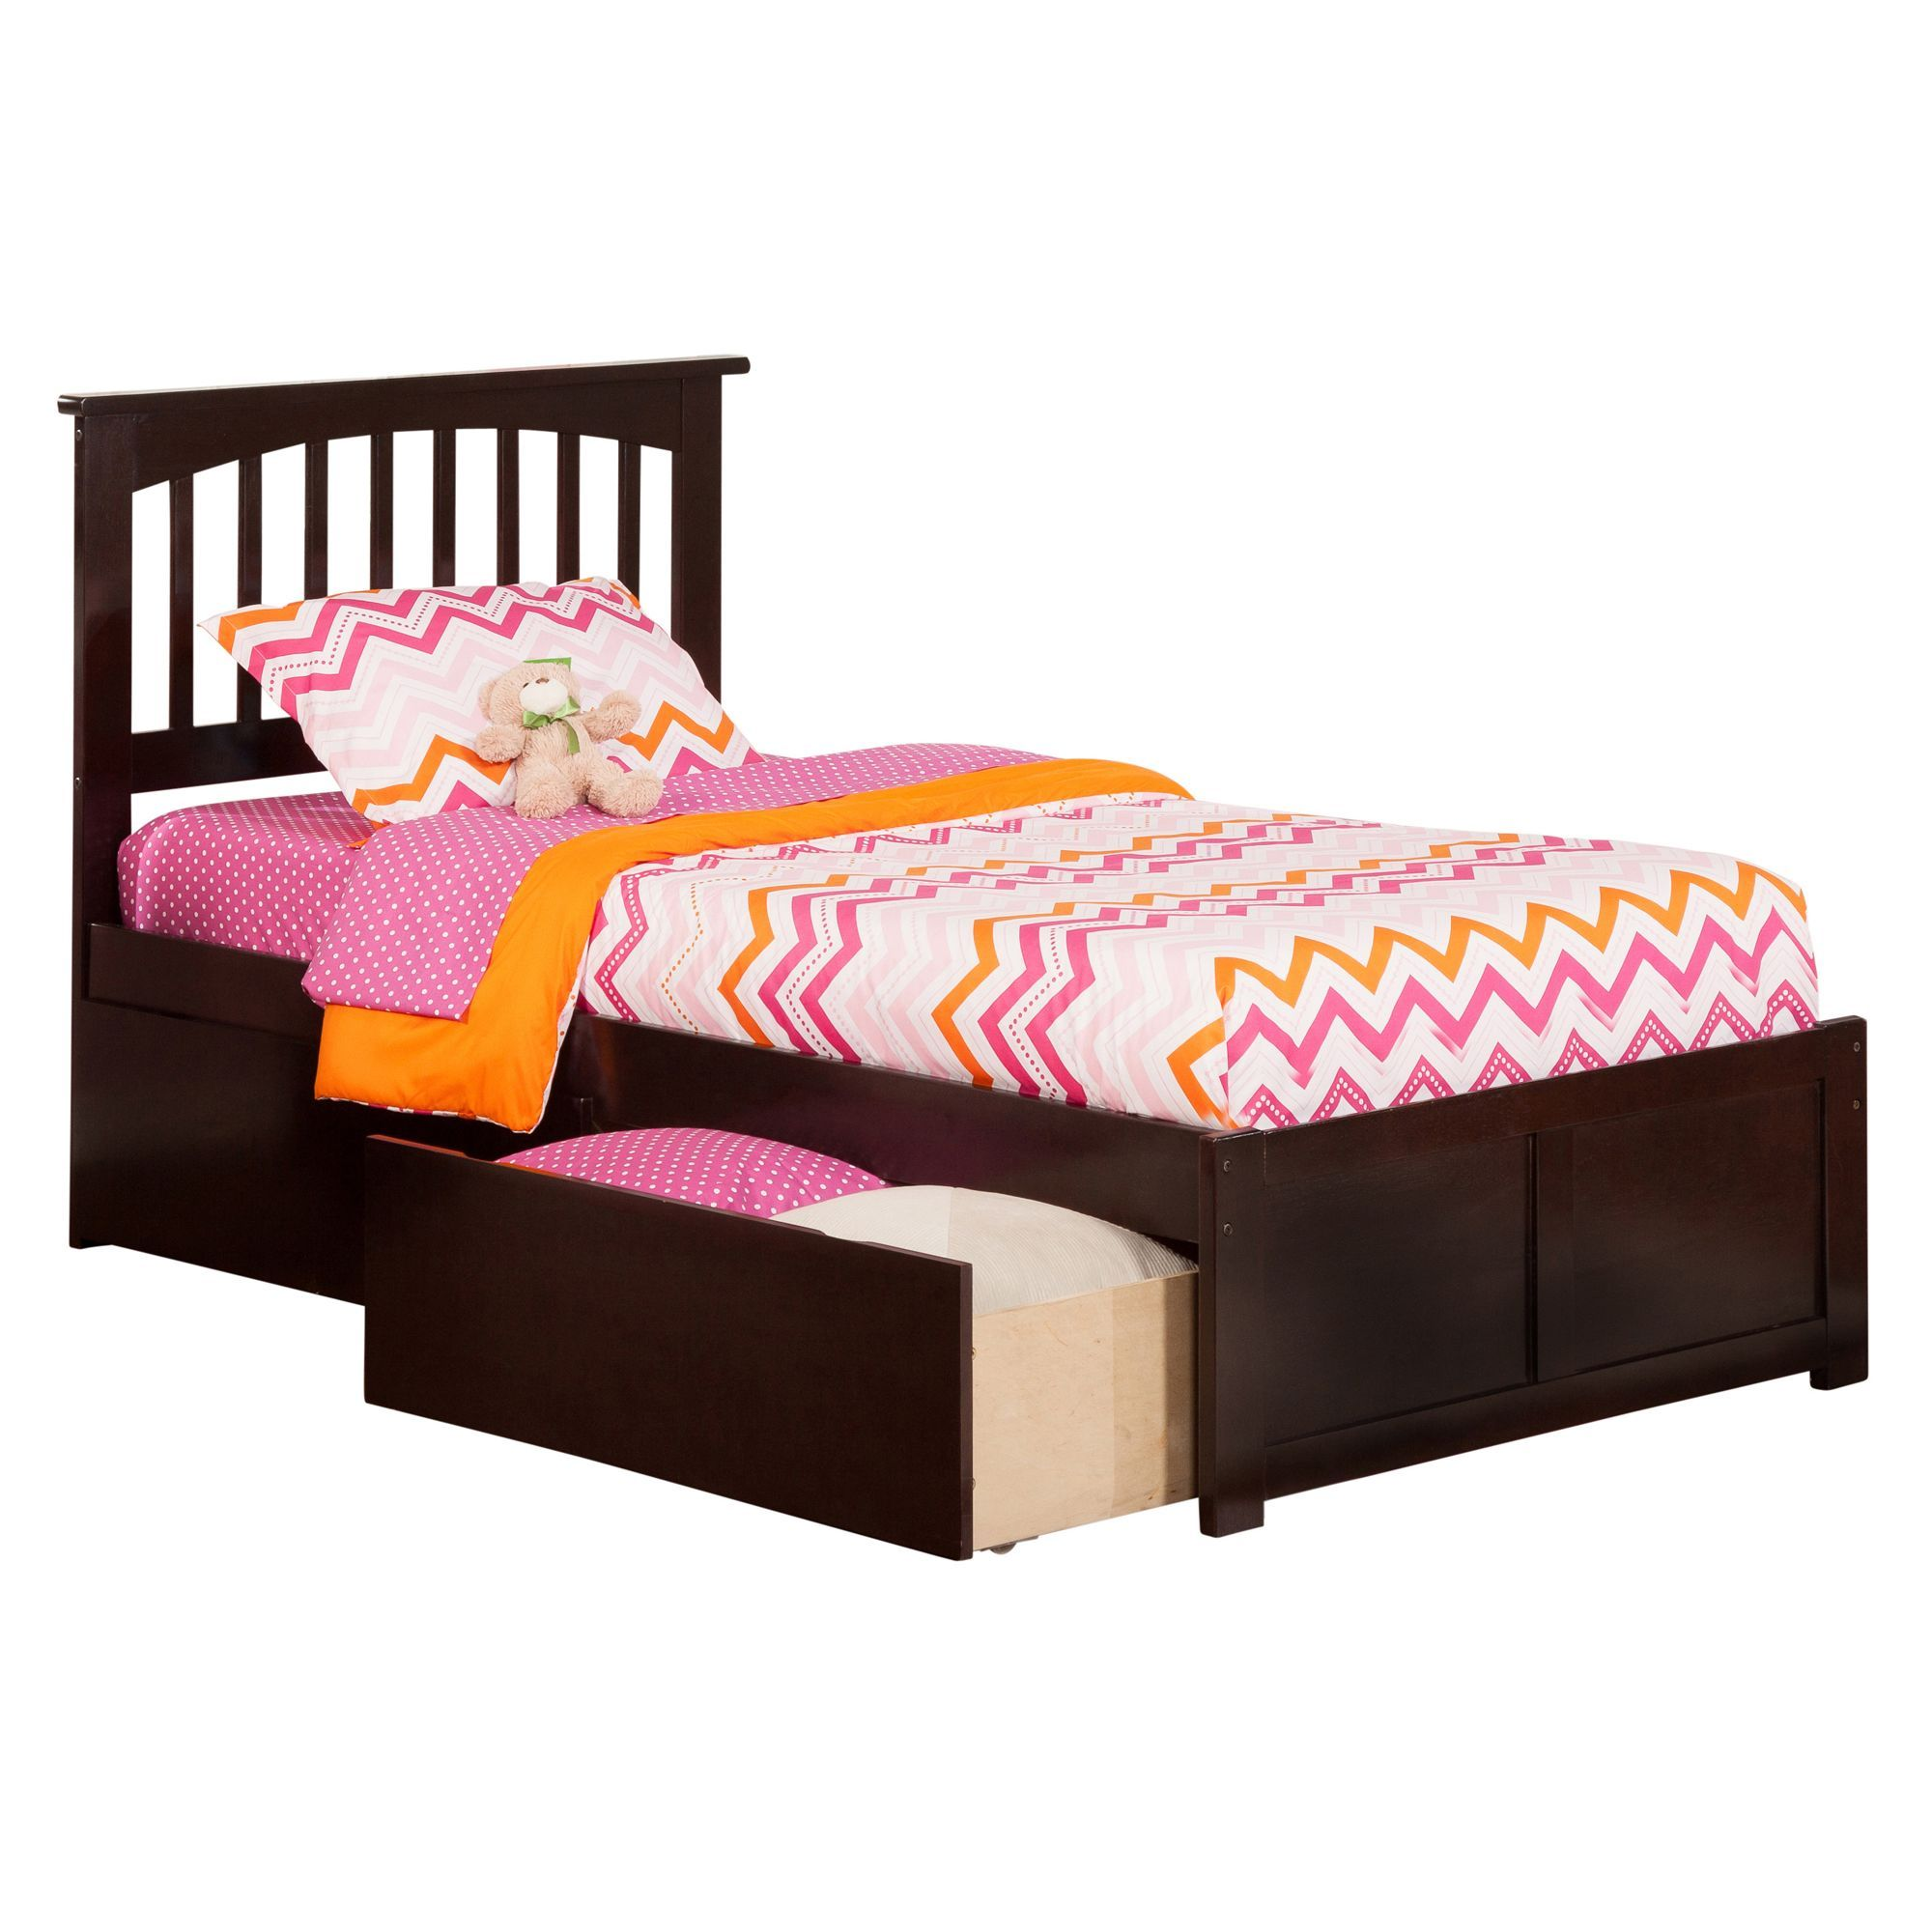 Mission\' Espresso (Brown) Wood Twin XL Bed XL with Flat-panel Foot ...